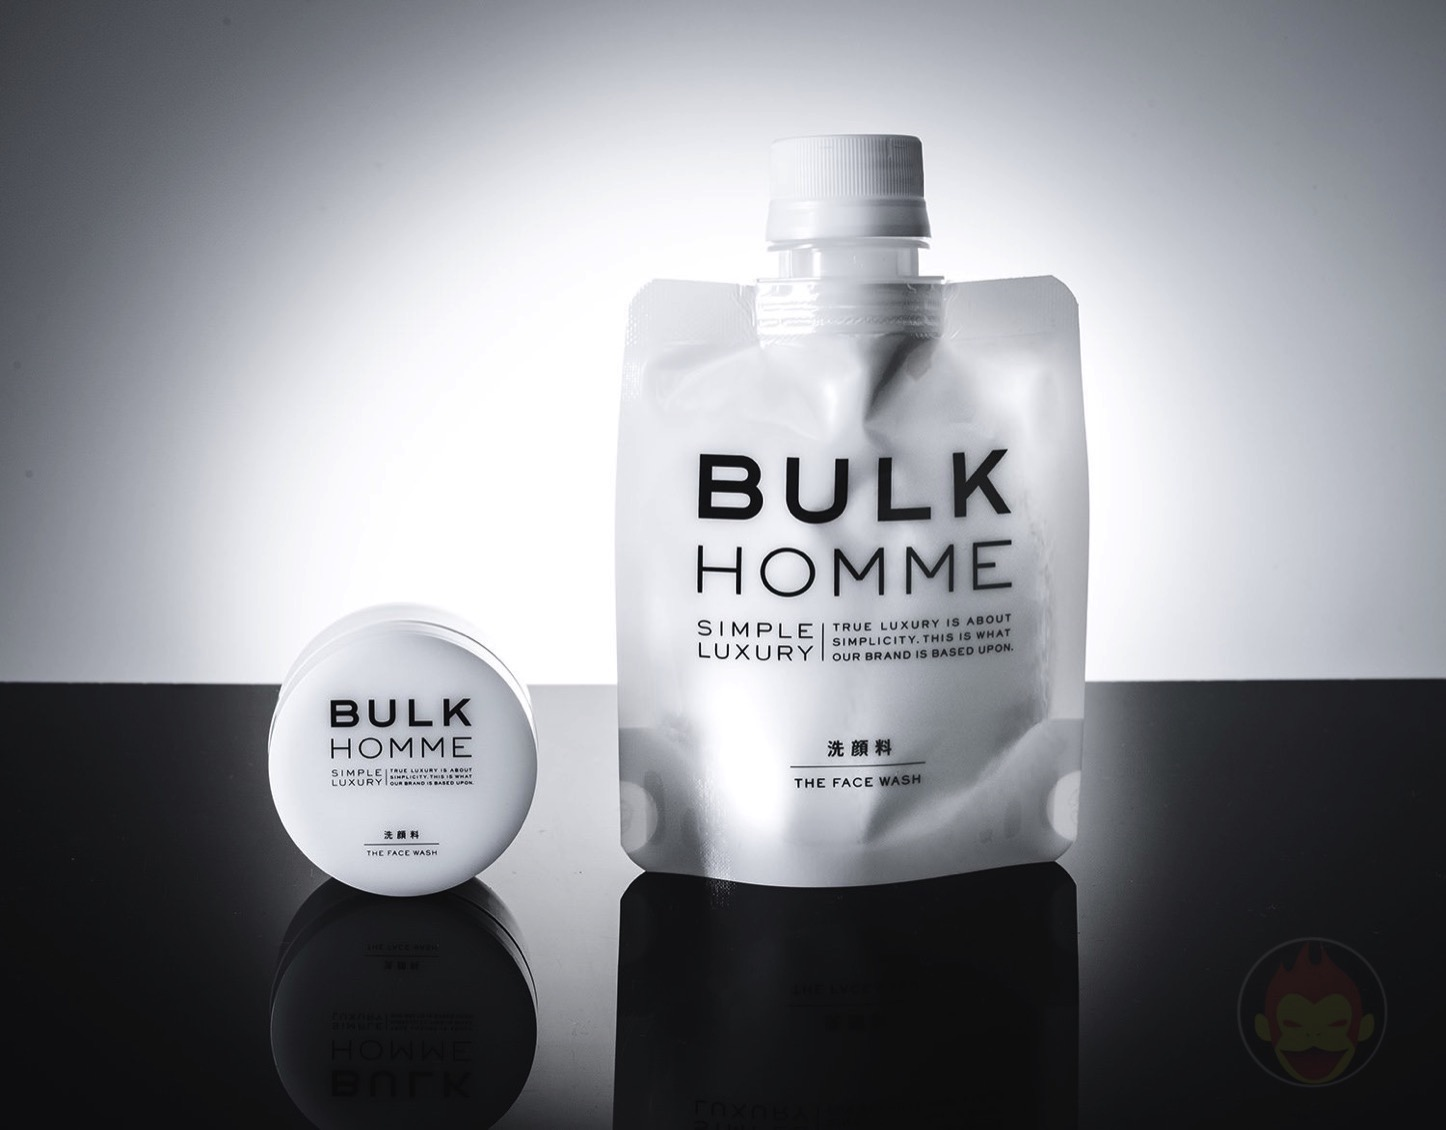 BULK HOMME 洗顔料「THE FACE WASH」